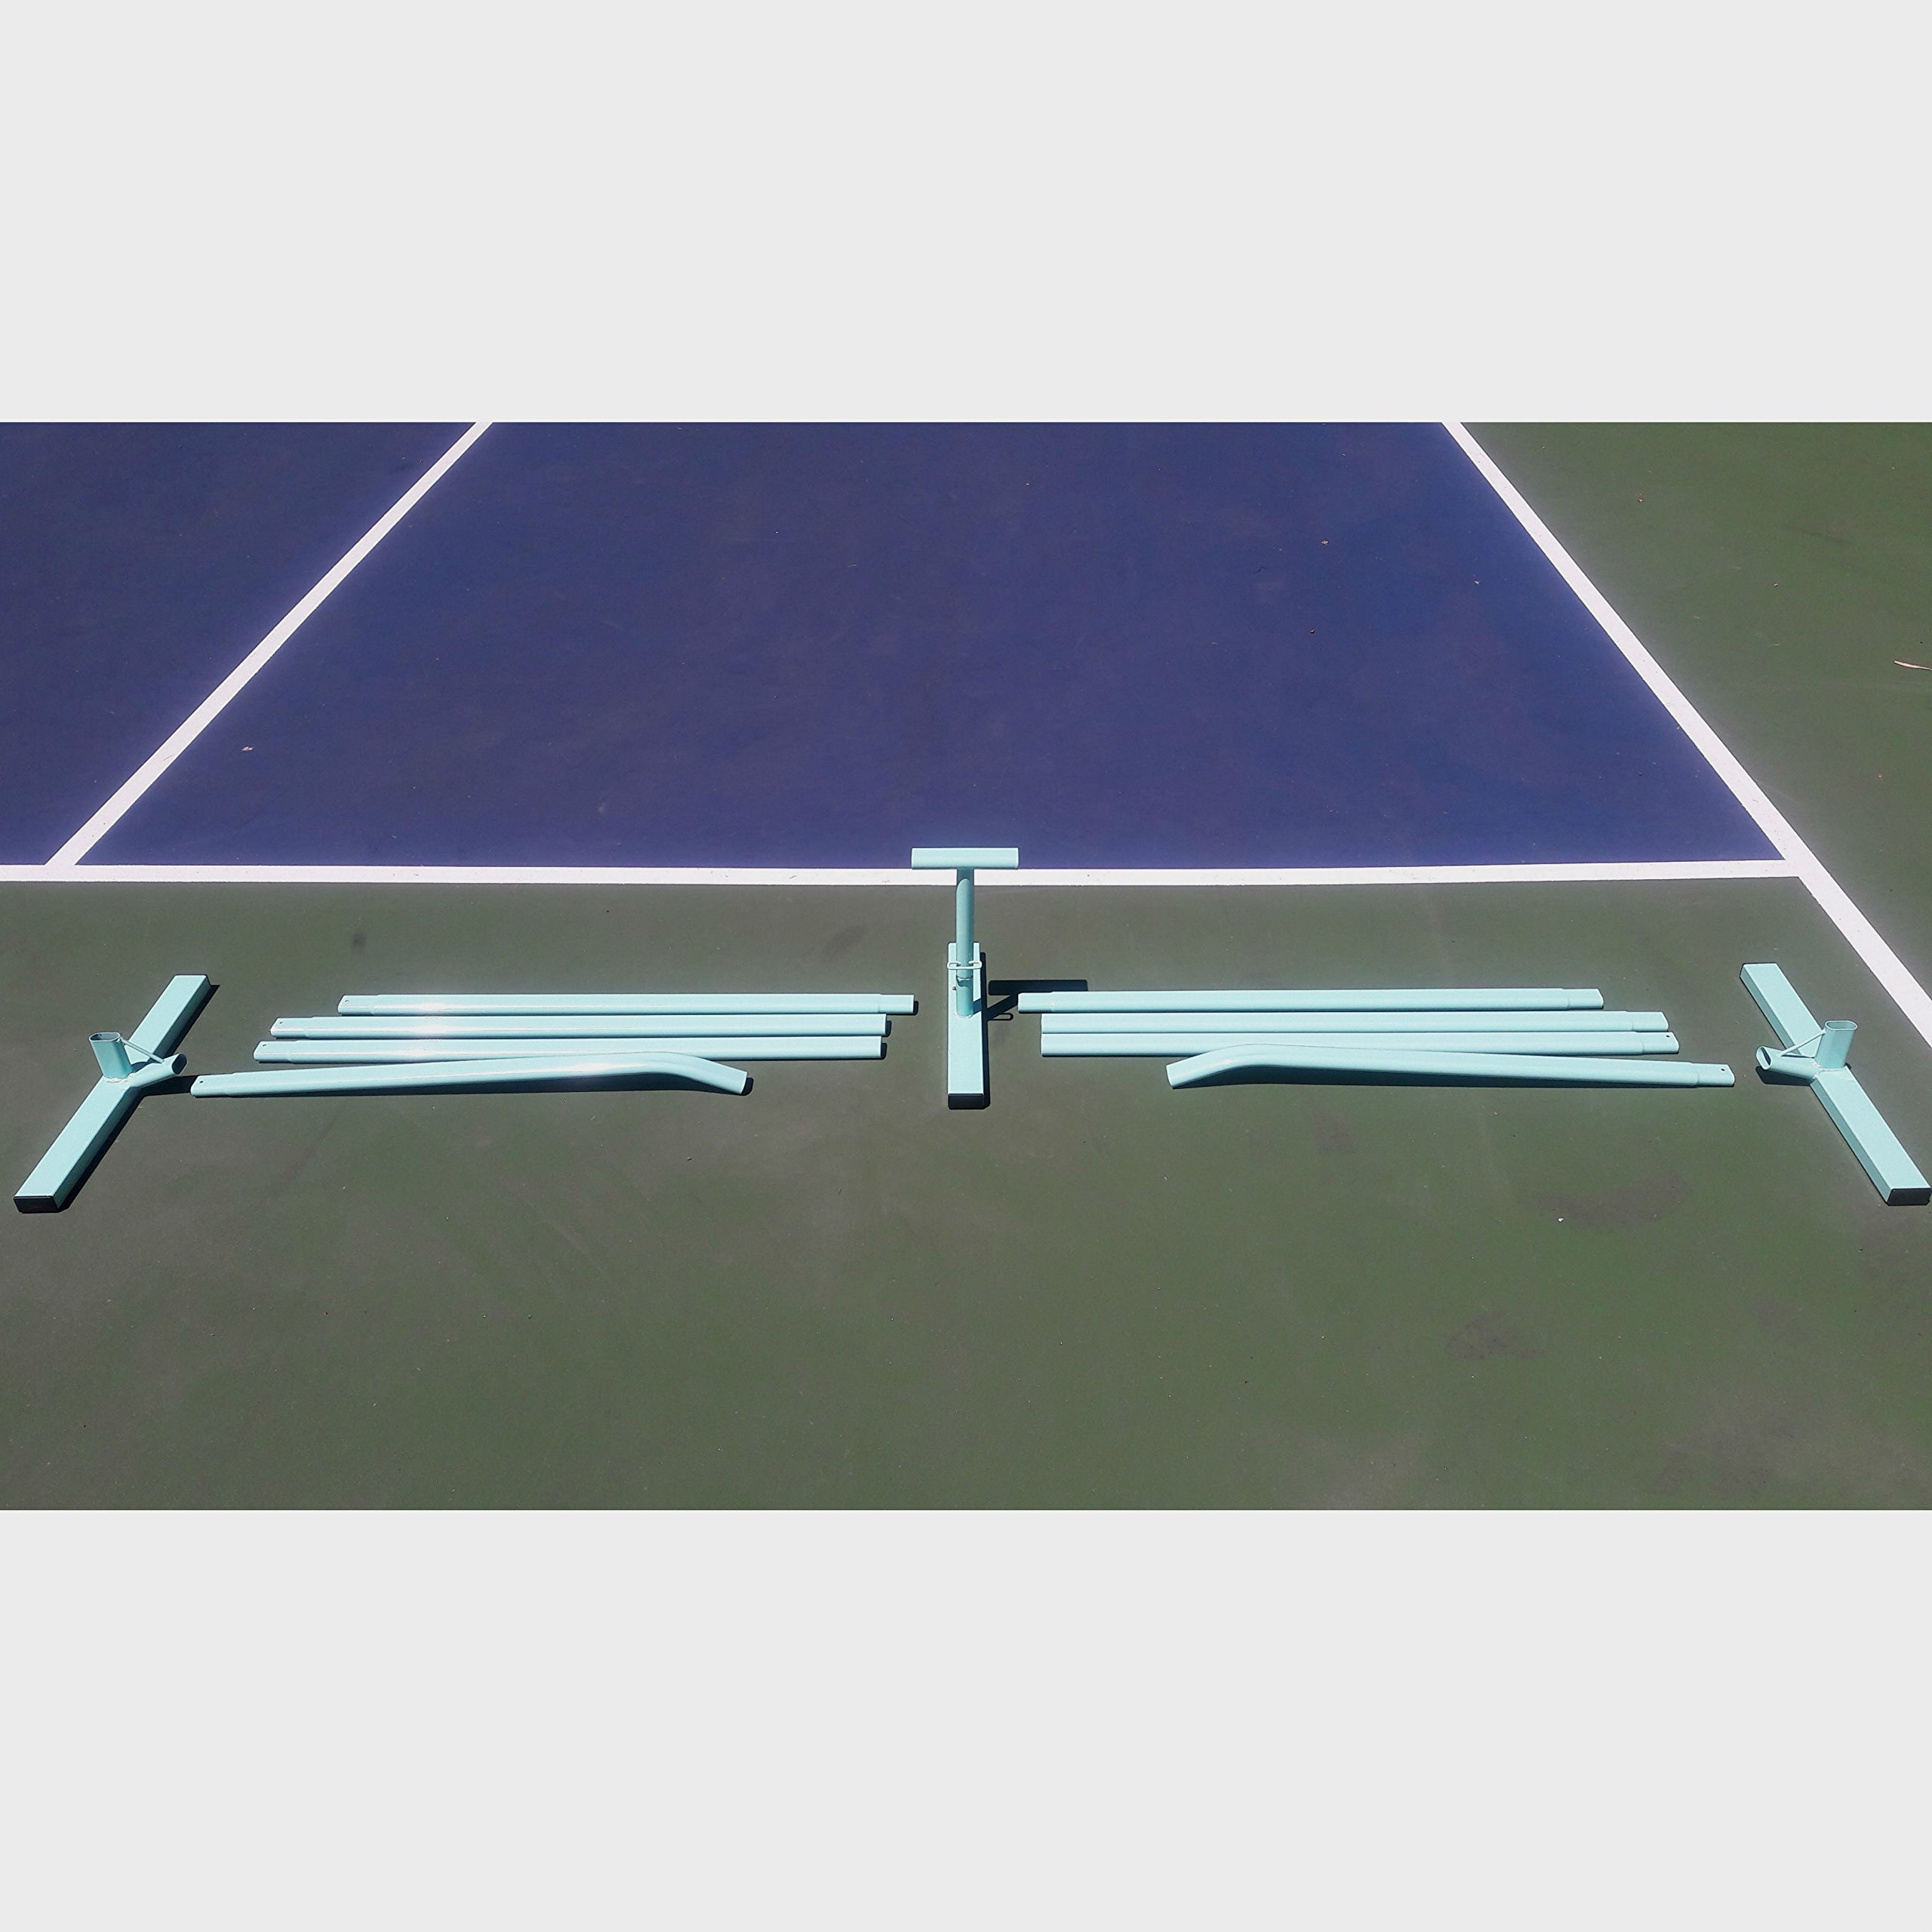 USAPA Portable Pickleball Net System by USAPA